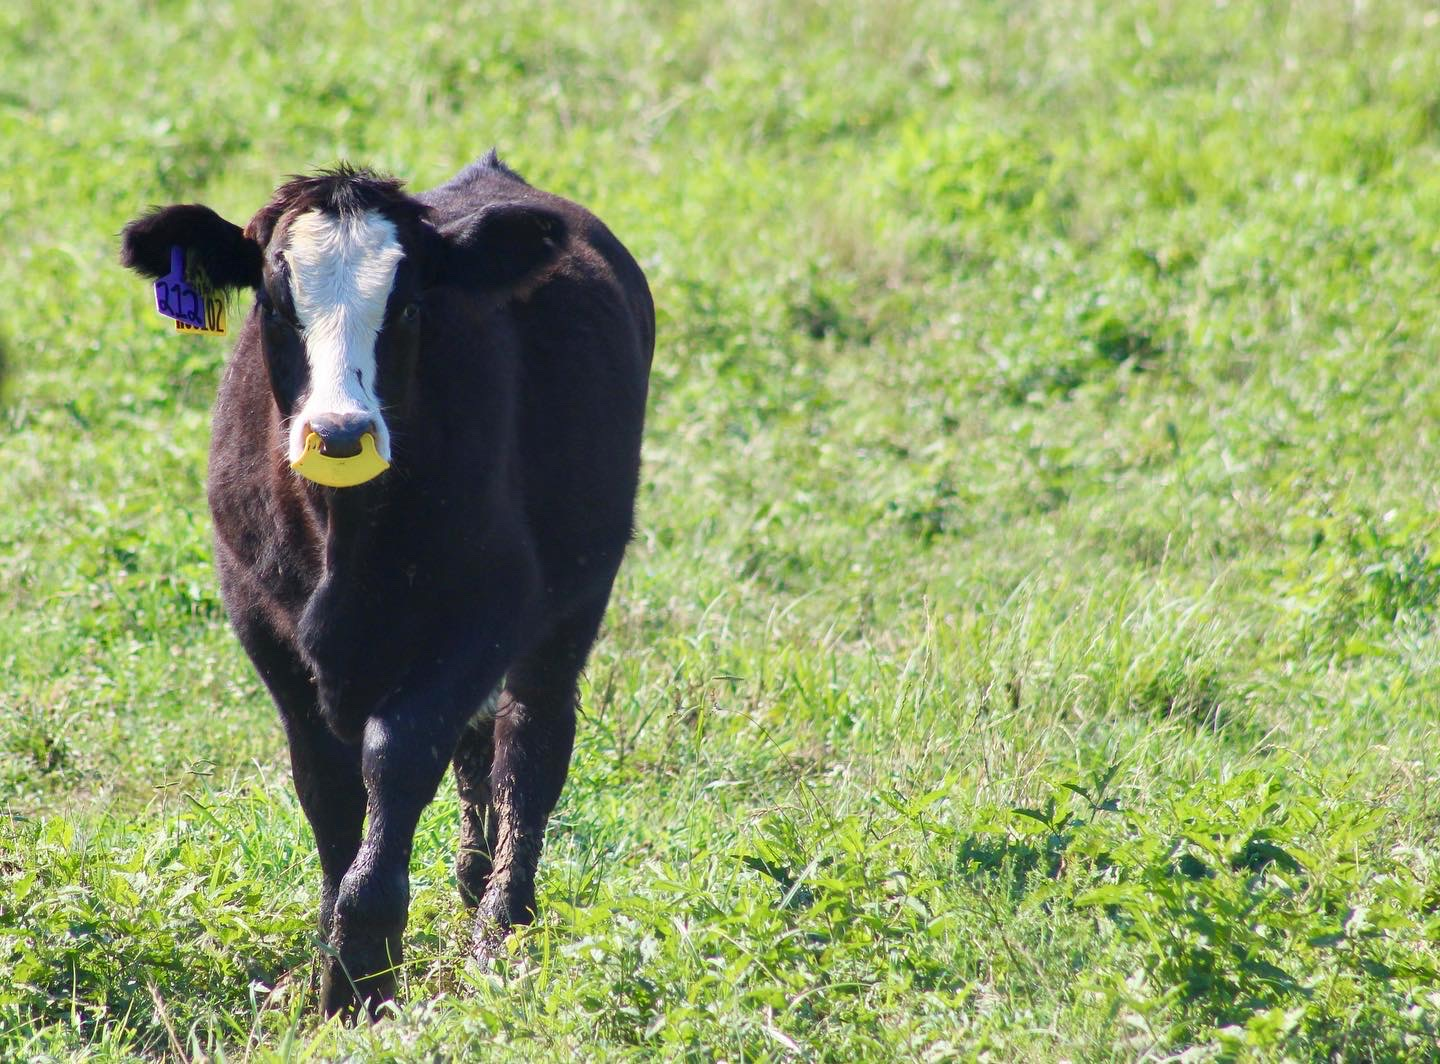 Weaning calf with a nose flap on